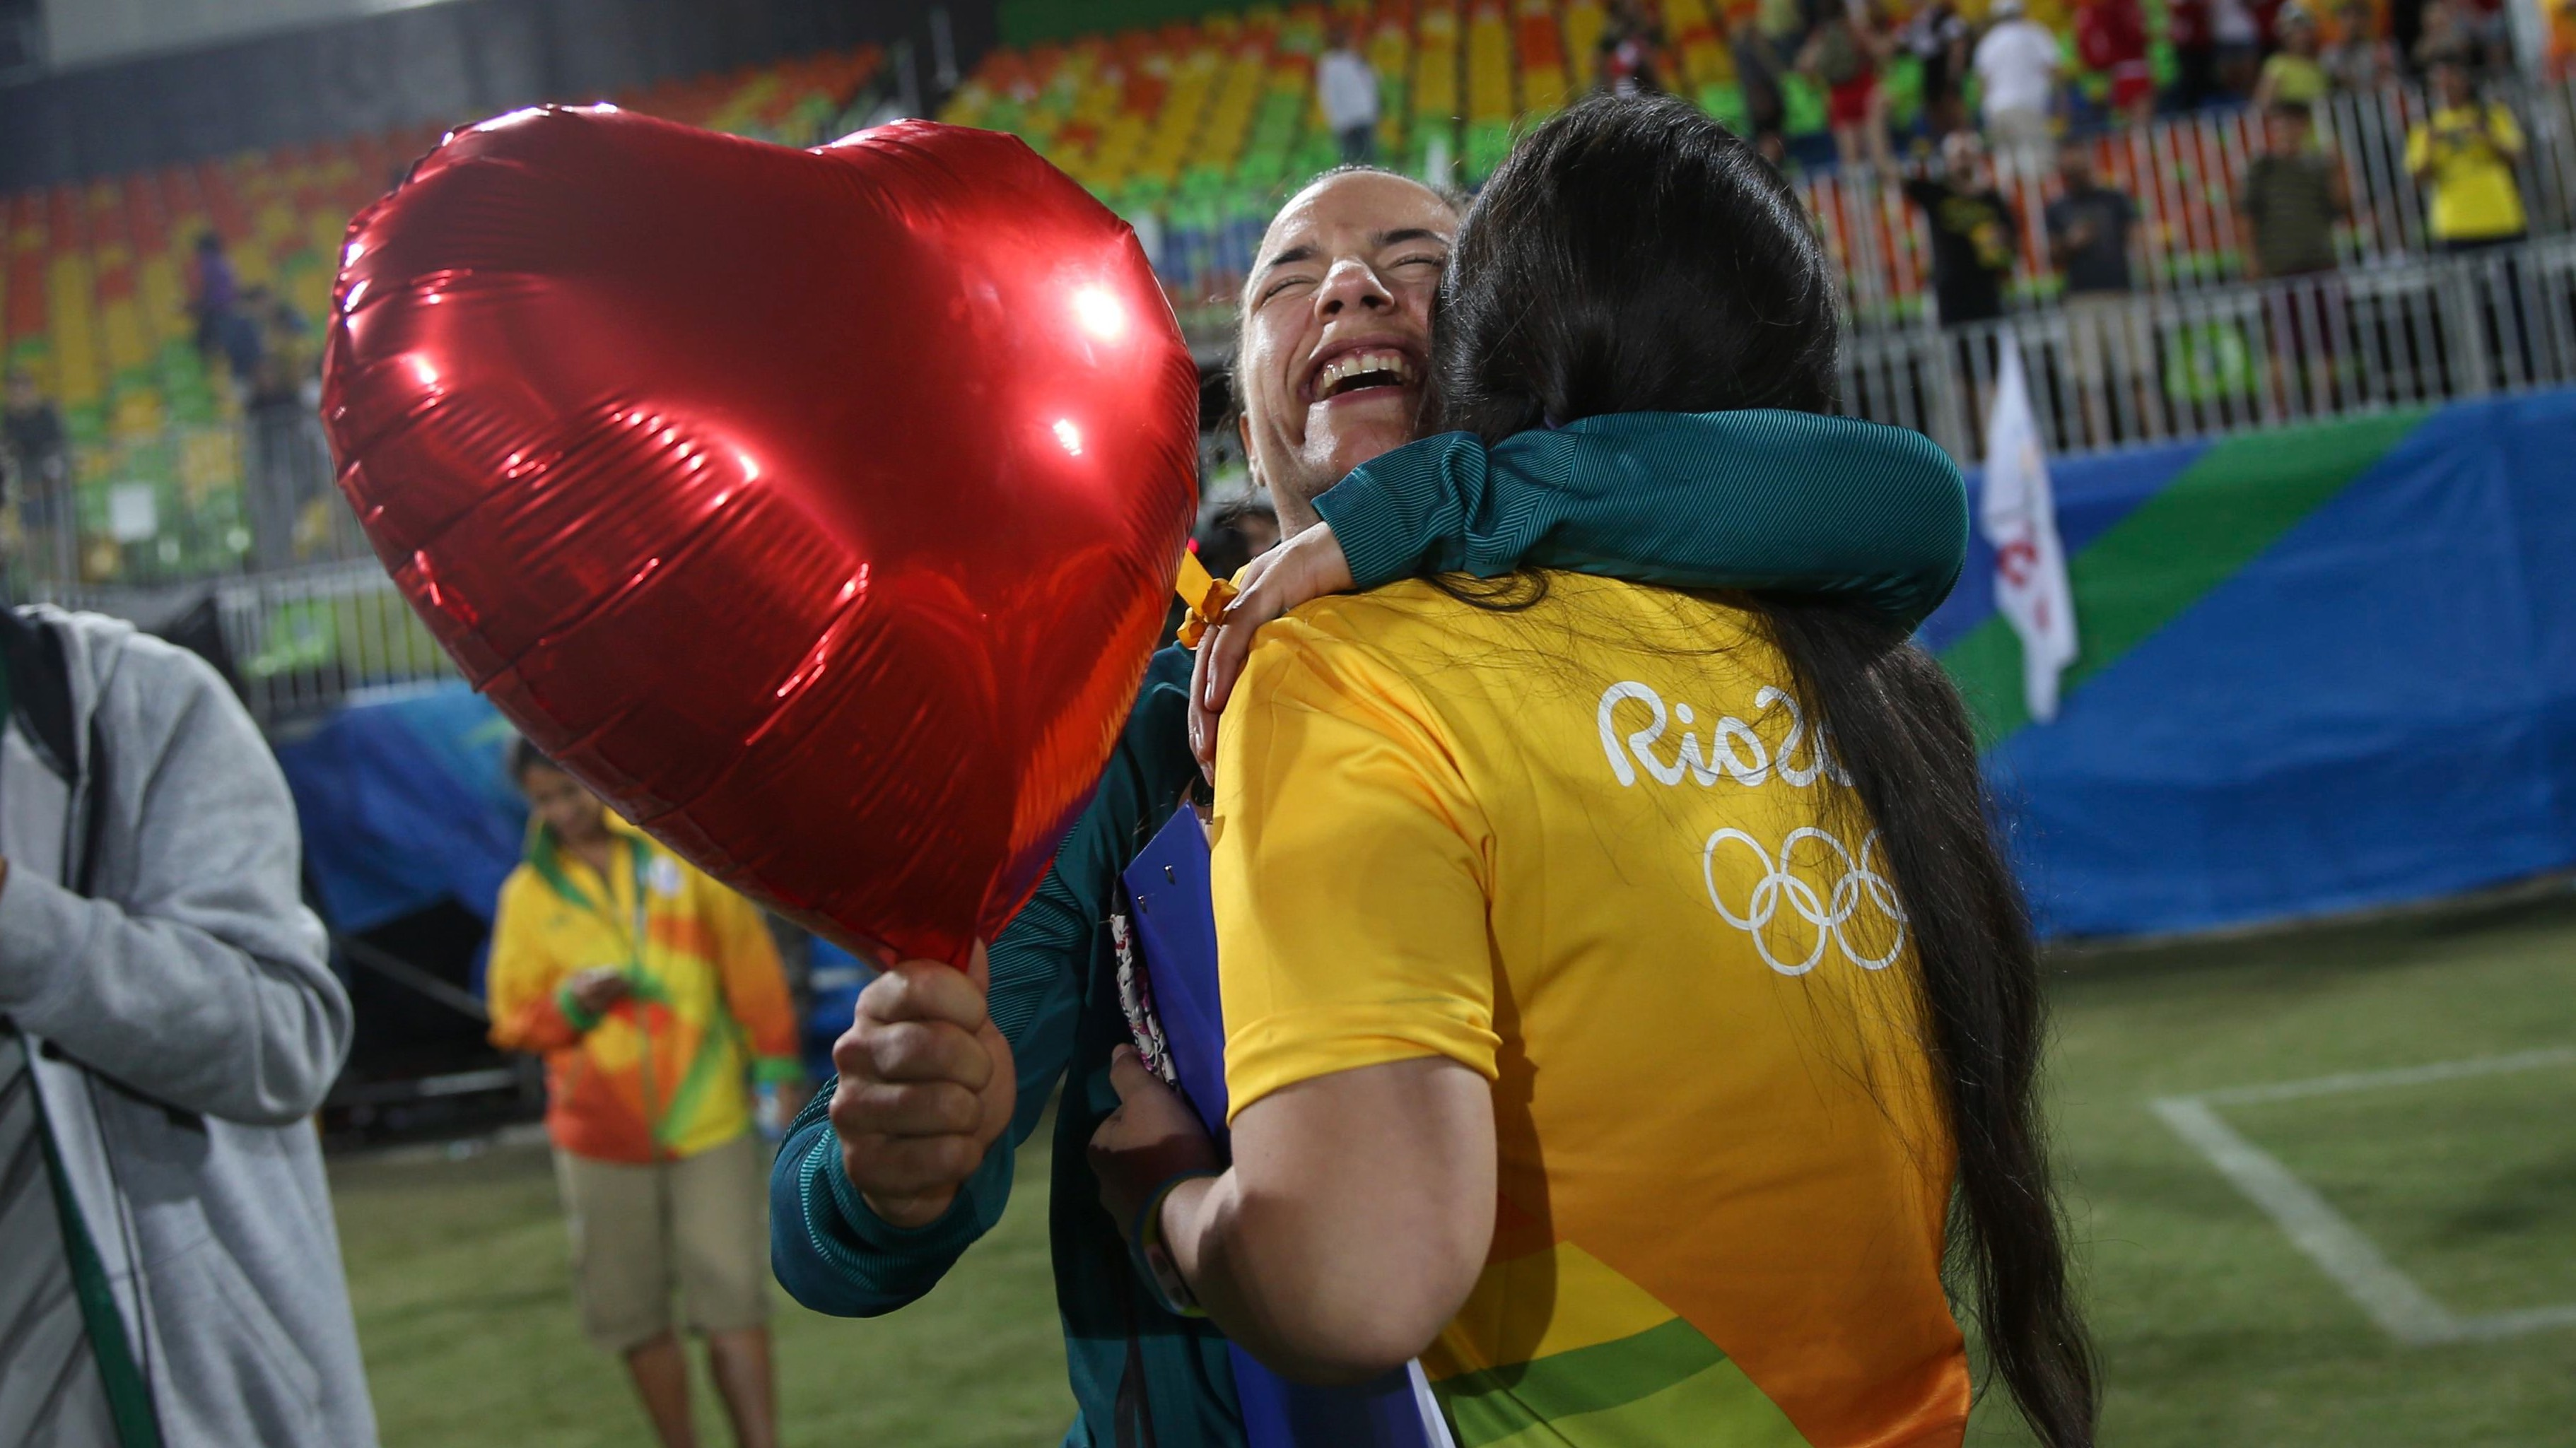 2016 Rio Olympics - Rugby - Women's Gold Medal Match Australia v New Zealand - Deodoro Stadium - Rio de Janeiro, Brazil - 08/08/2016.  Rugby player Isadora Cerullo (BRA) of Brazil hugs Marjorie, a volunteer, after receiving her wedding proposal on the sidelines of the women's rugby medal ceremony. REUTERS/Alessandro Bianchi (BRAZIL  - Tags: SPORT OLYMPICS SPORT RUGBY) FOR EDITORIAL USE ONLY. NOT FOR SALE FOR MARKETING OR ADVERTISING CAMPAIGNS.   - RTSLYLE